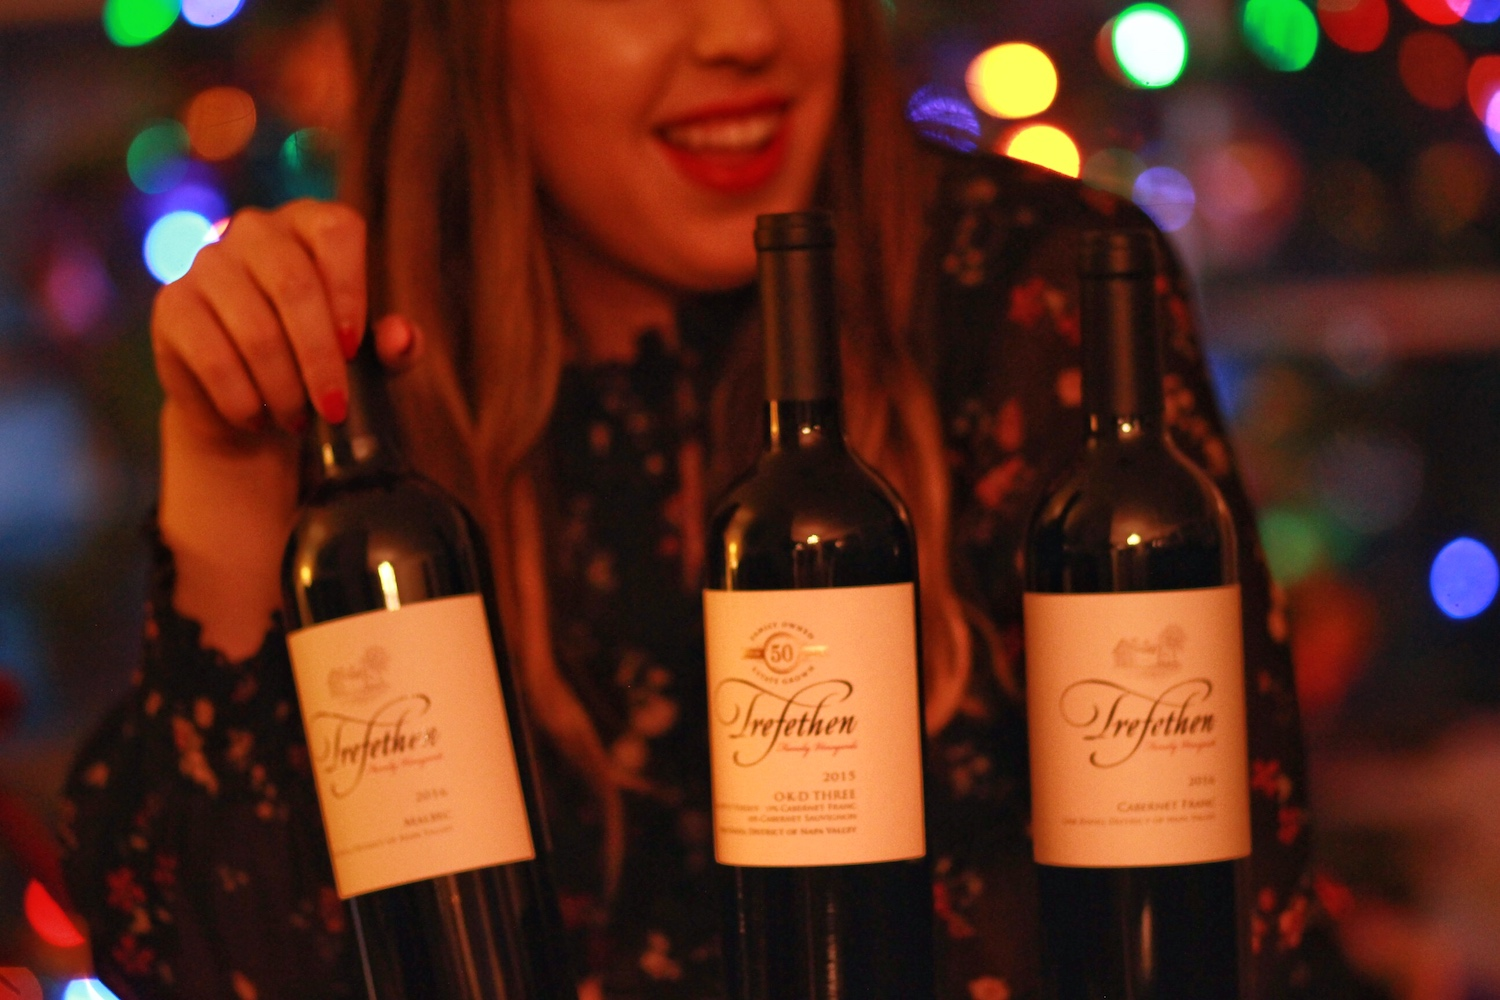 Trefethen Family Vineyards Holiday Gift Guide